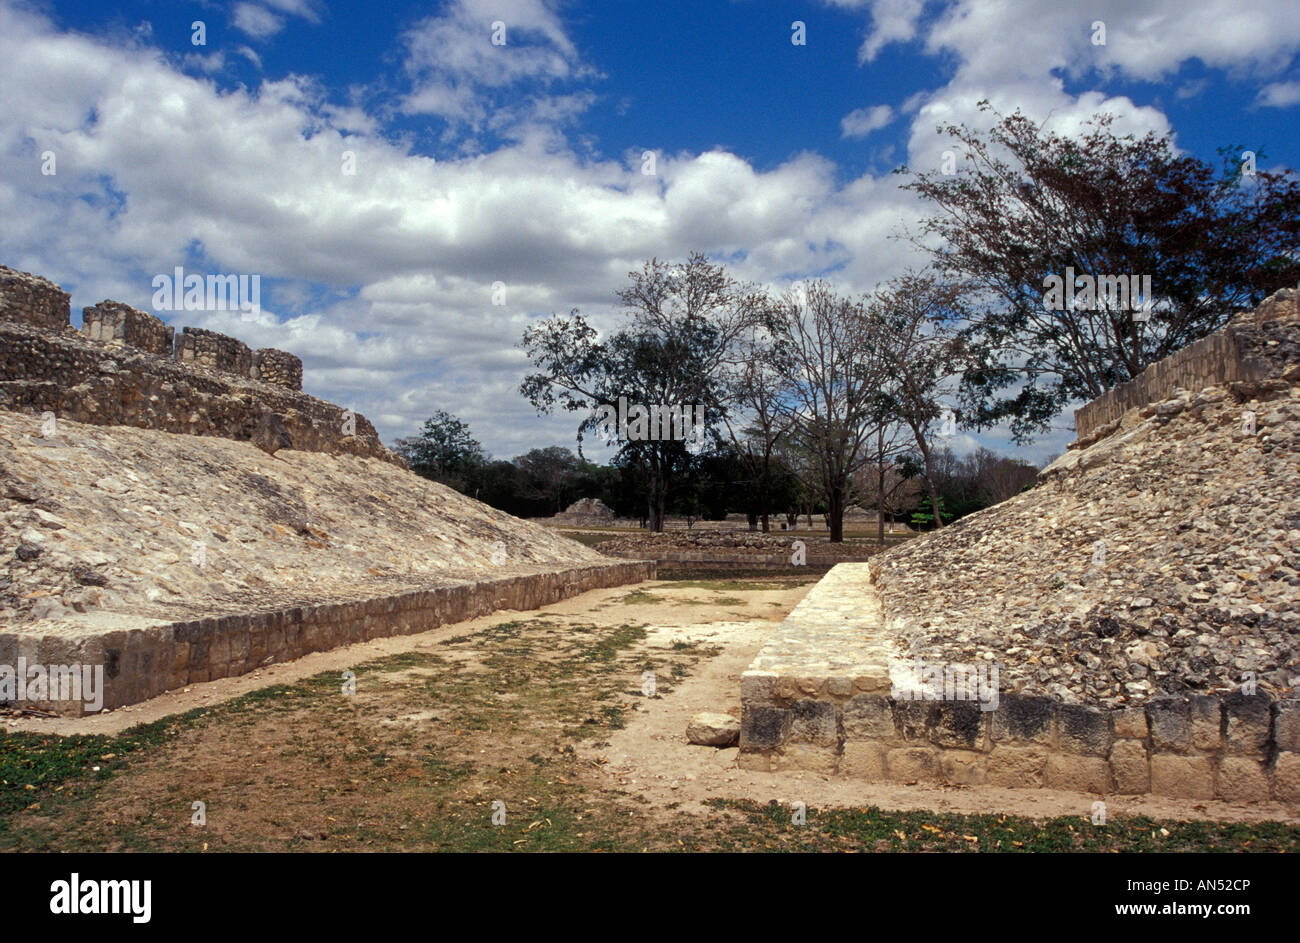 The Mayan ballcourt at Edzna, Campeche, Mexico - Stock Image